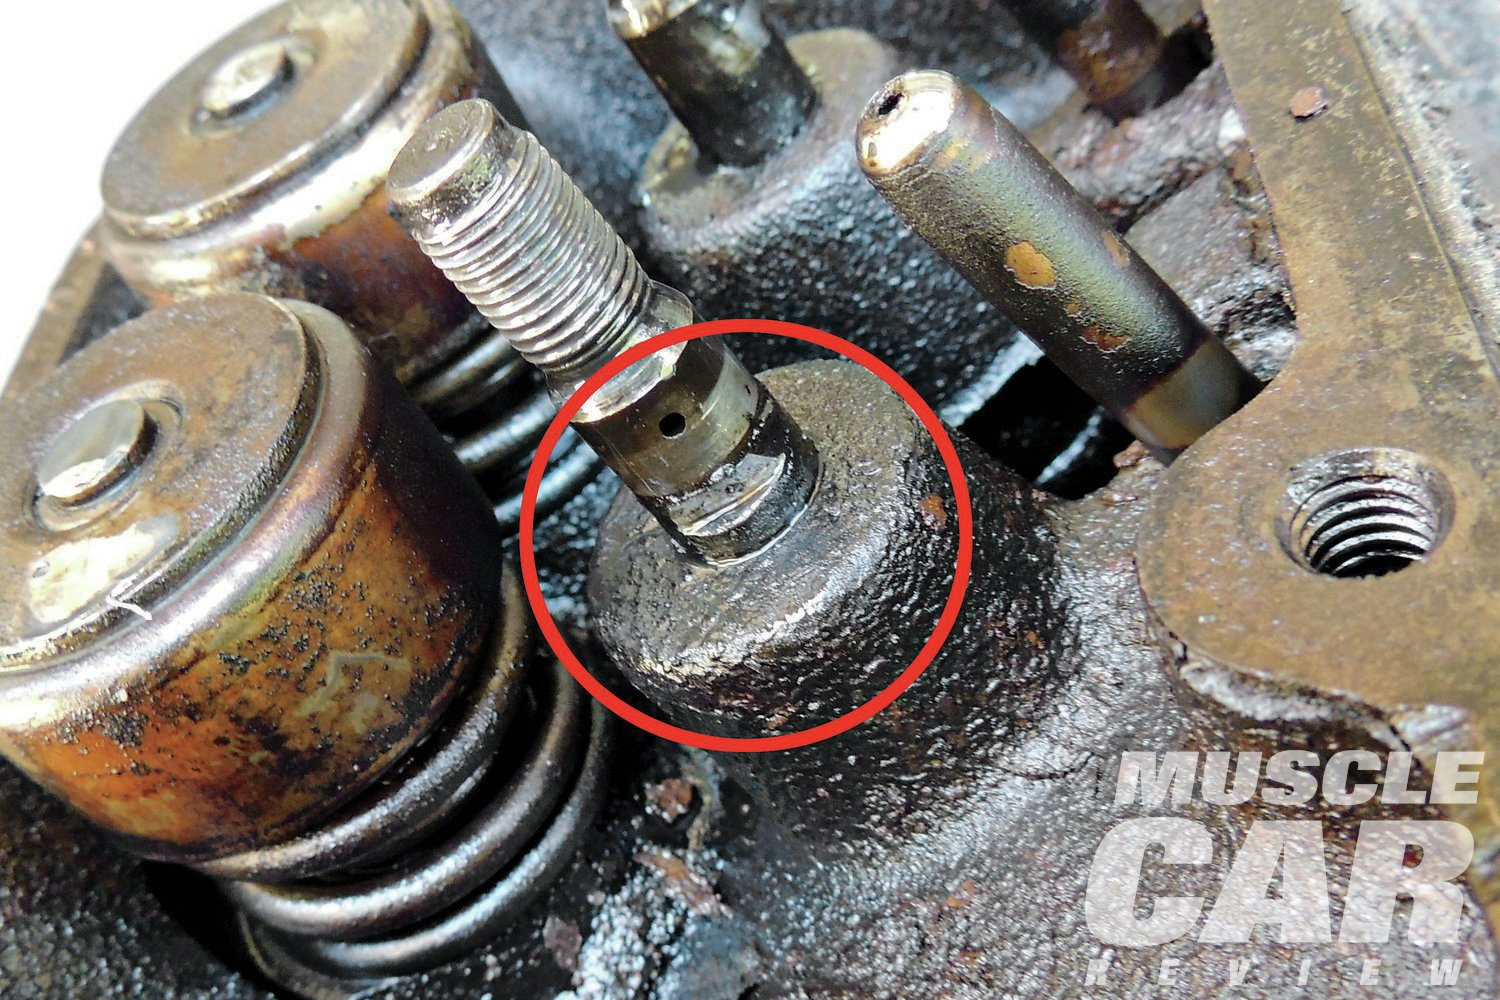 As we removed the rocker arms we could see that a few of the studs had some unusual wear patterns--another red flag for us to pay attention to any other potential valvetrain issues.